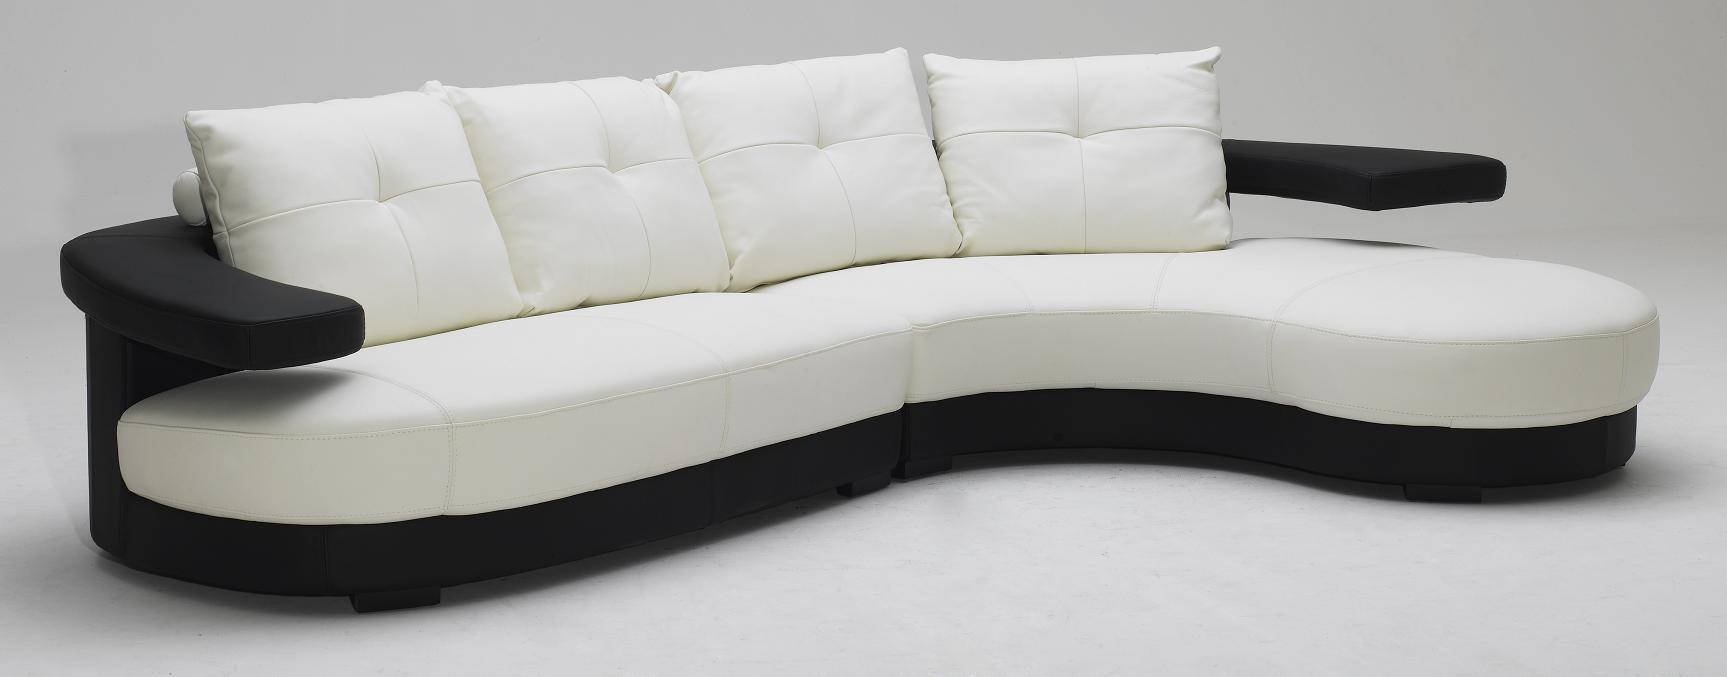 Moderno U Sofa What S The Difference Between Sofa And Couch